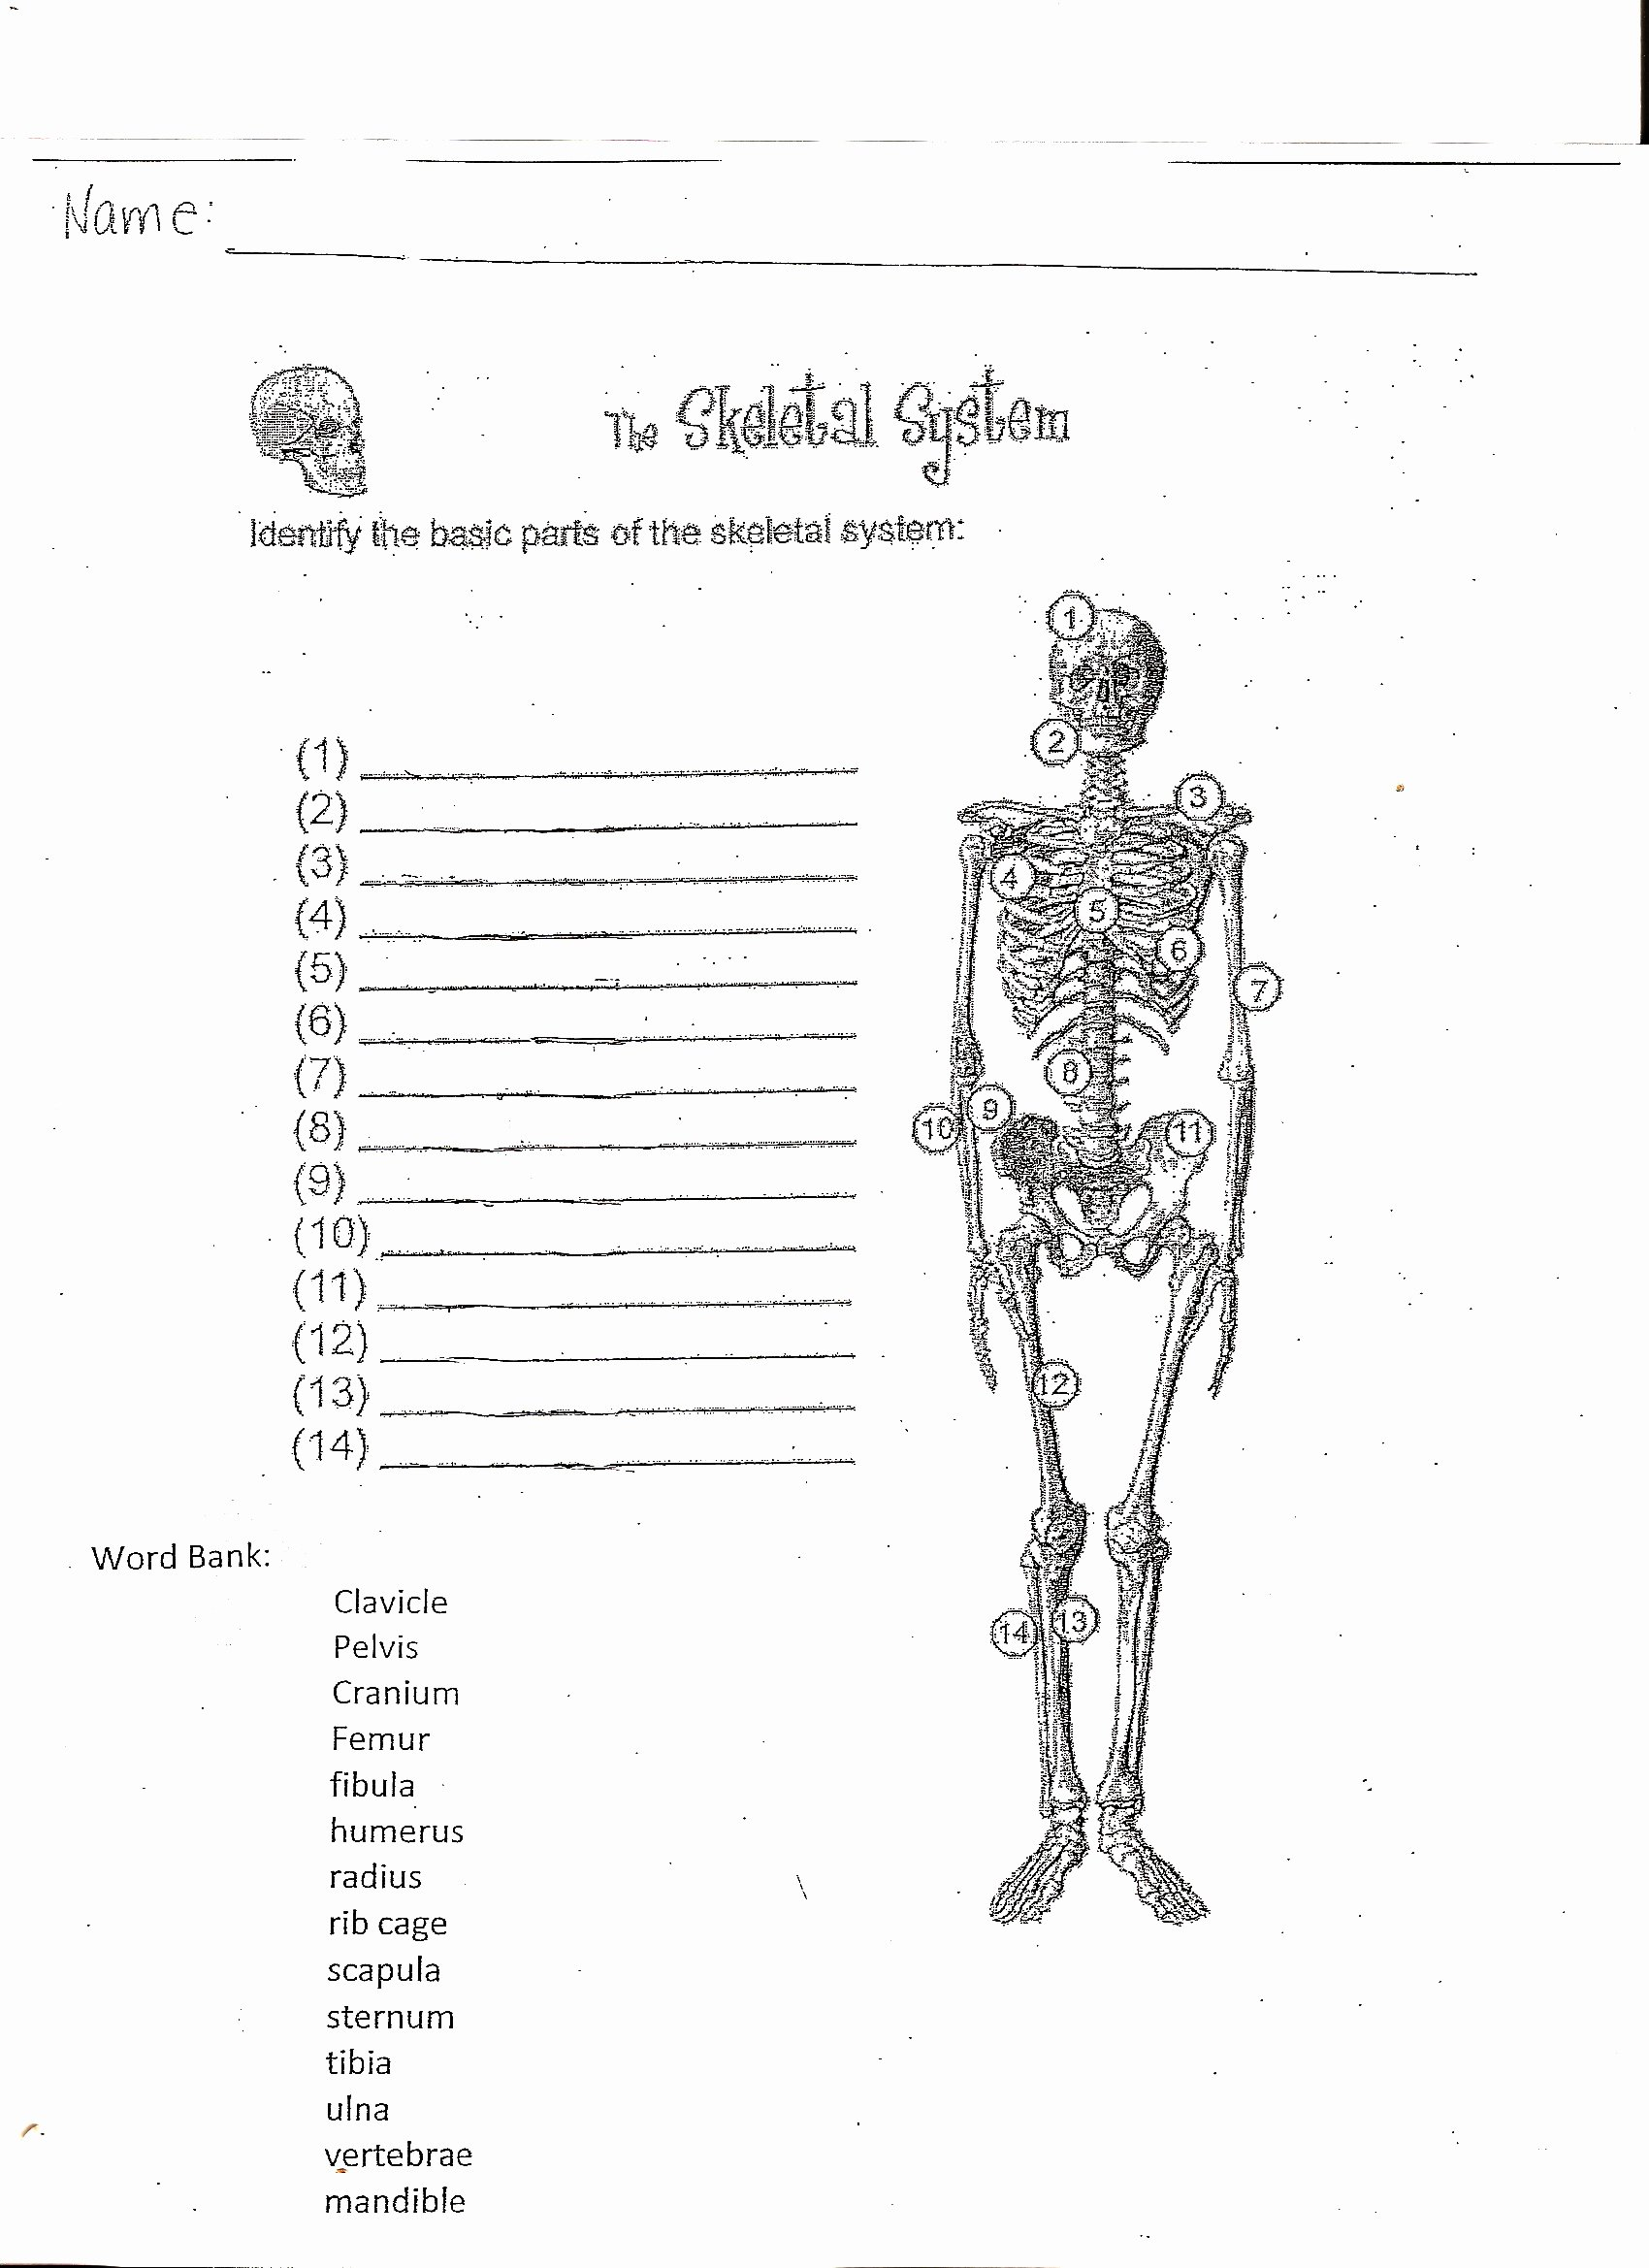 Skeletal System Worksheet Pdf Luxury Mckenna Mrs Home Page